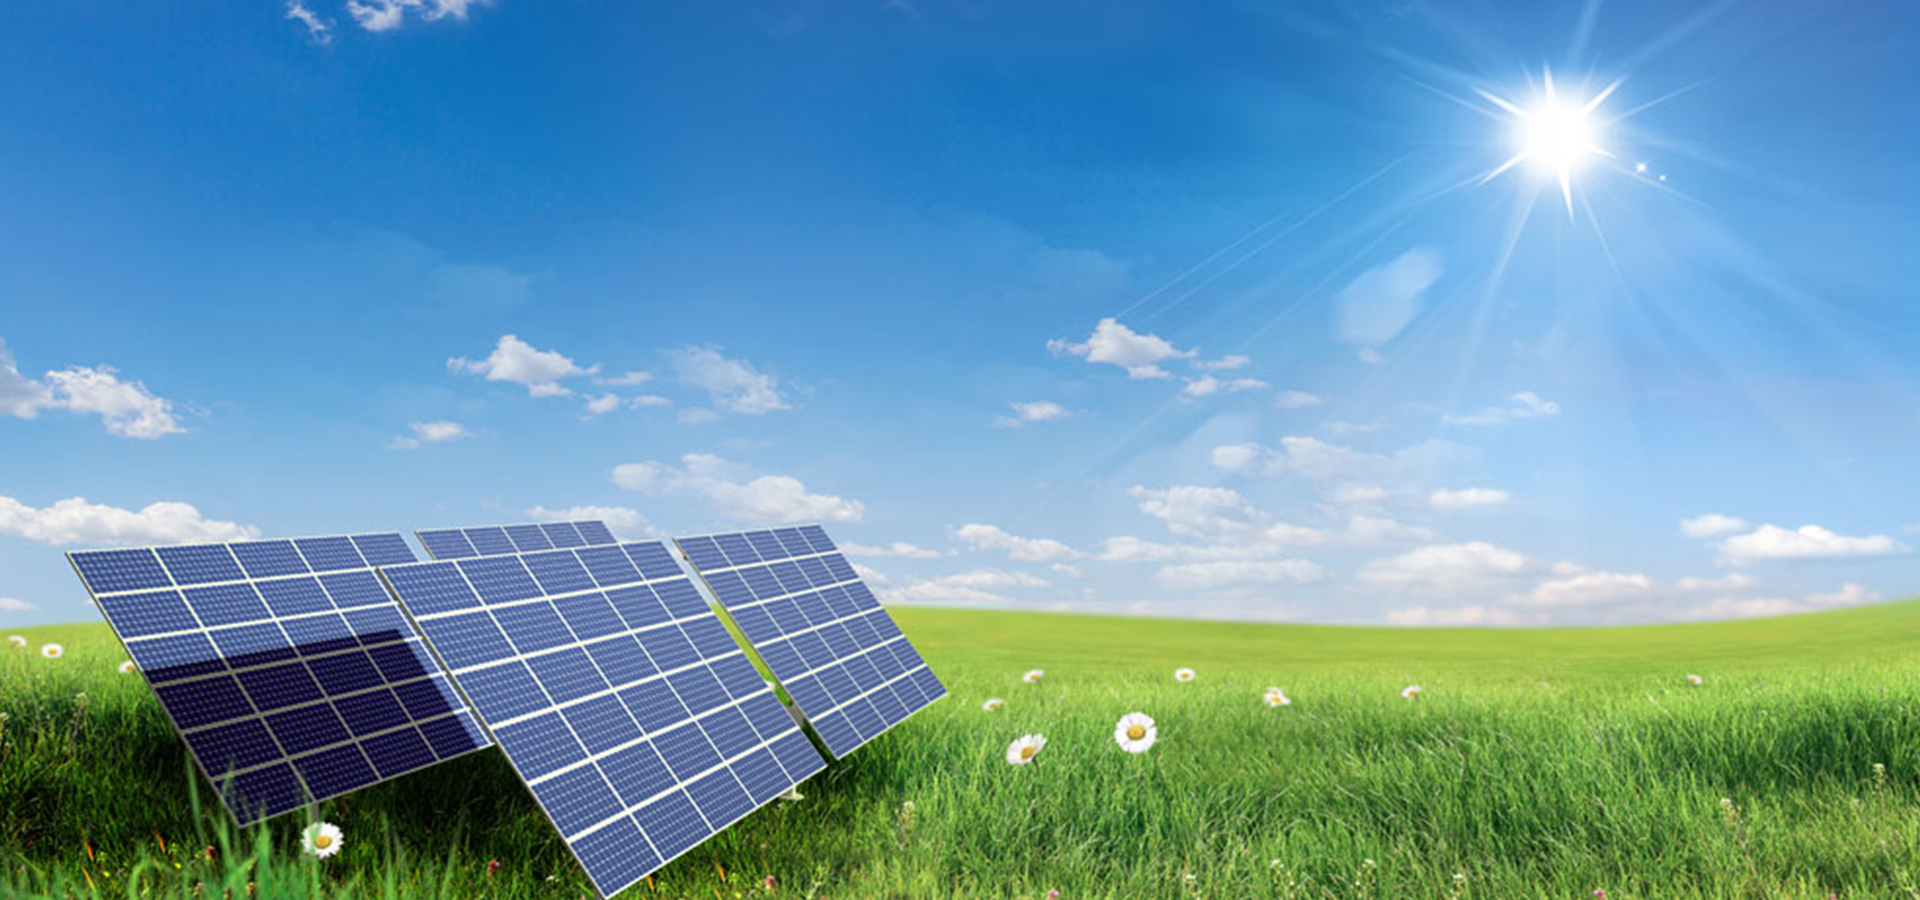 Solar Panel On The Green Grass Energy Saving Green